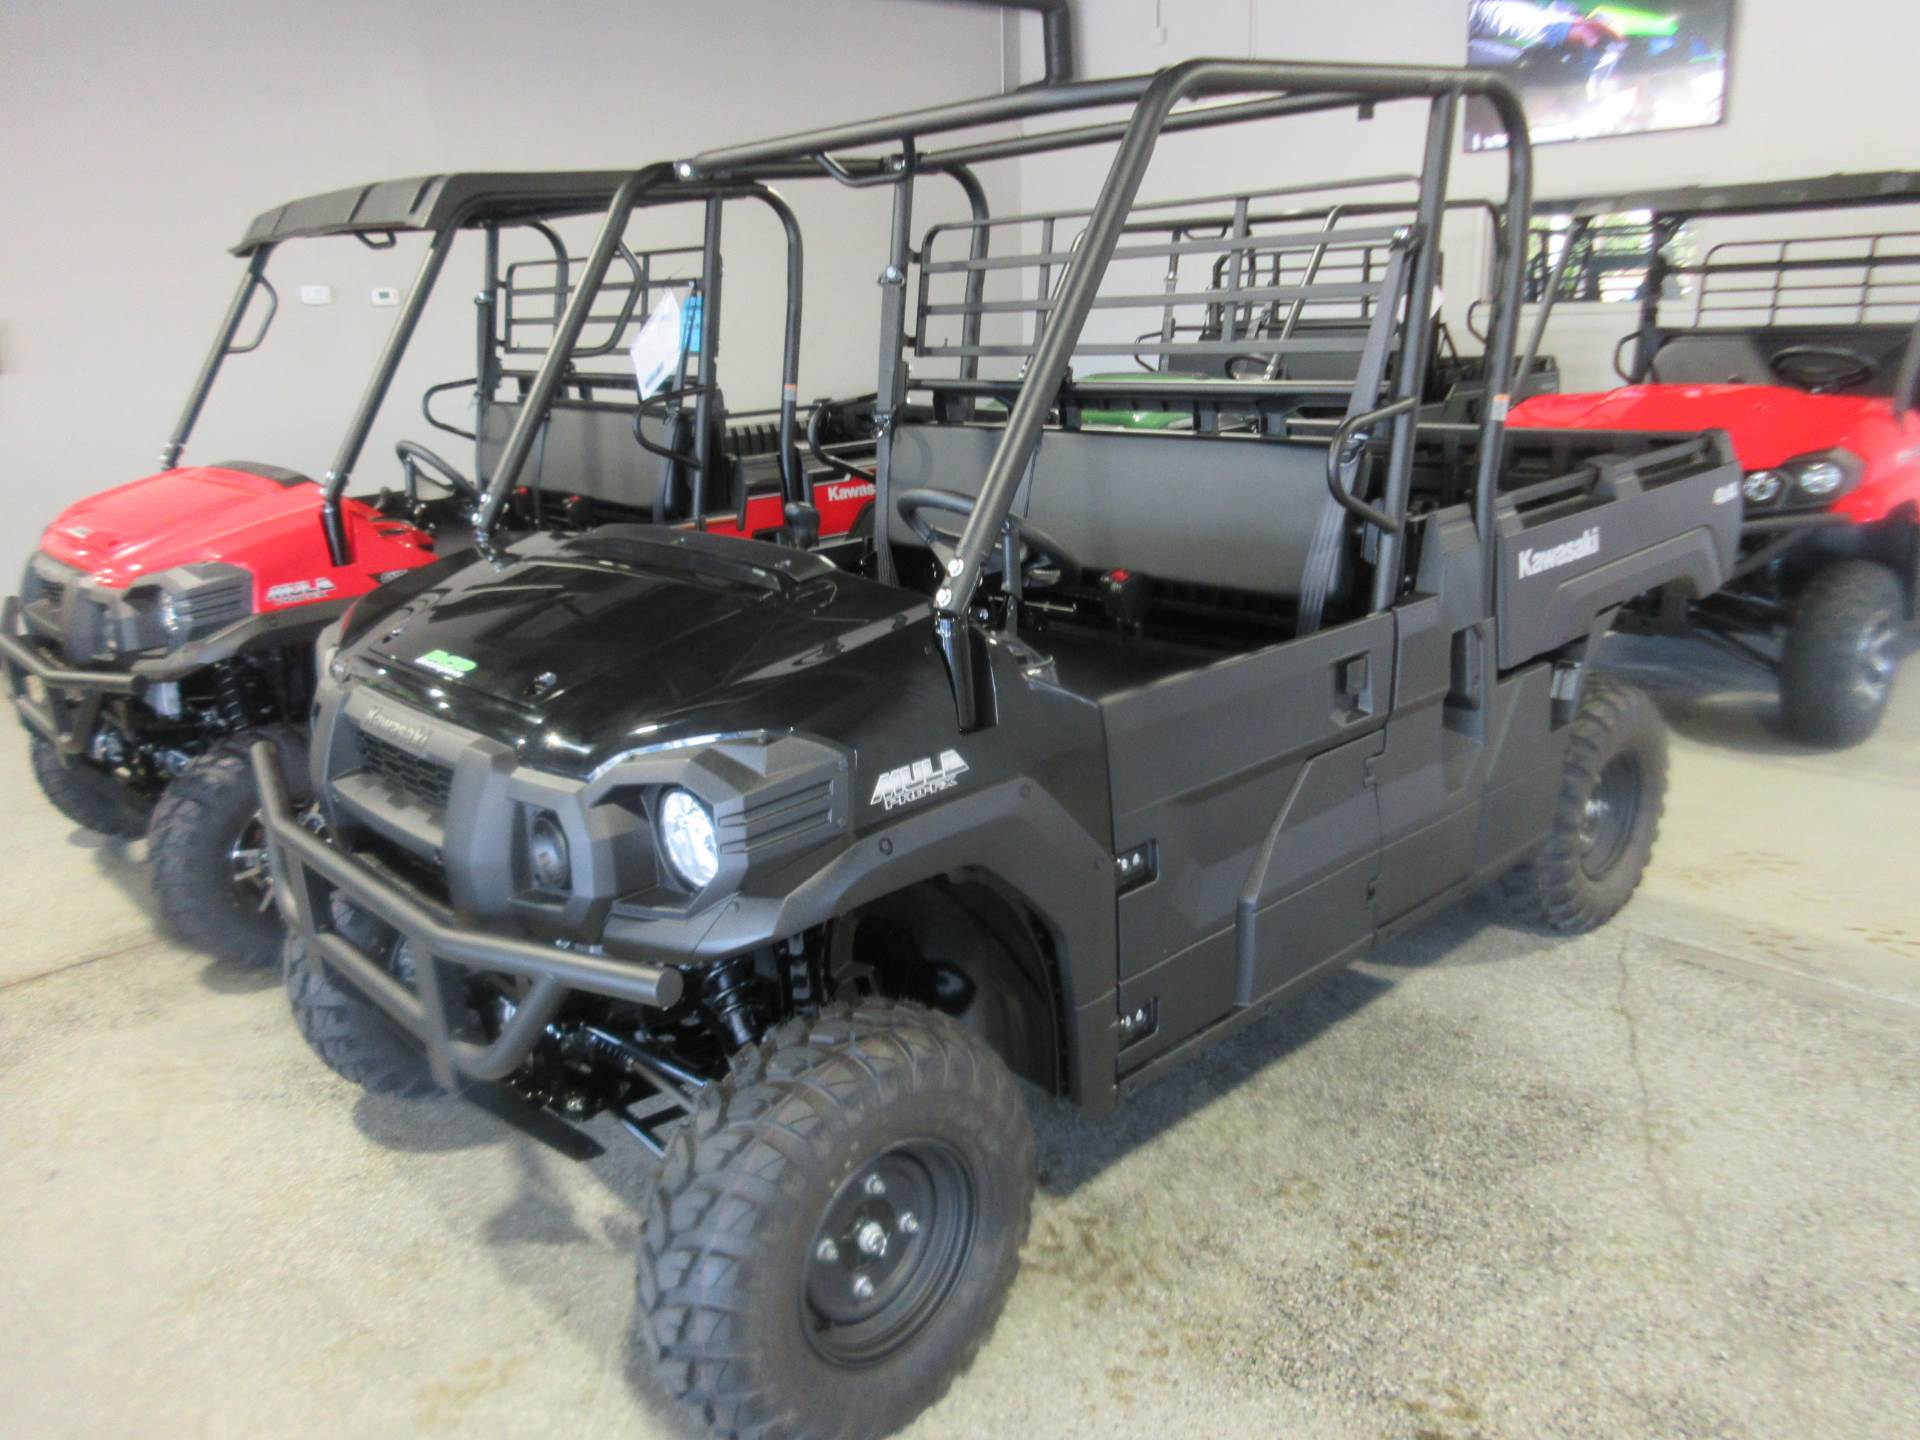 2020 Kawasaki Mule PRO-FX in Sacramento, California - Photo 6